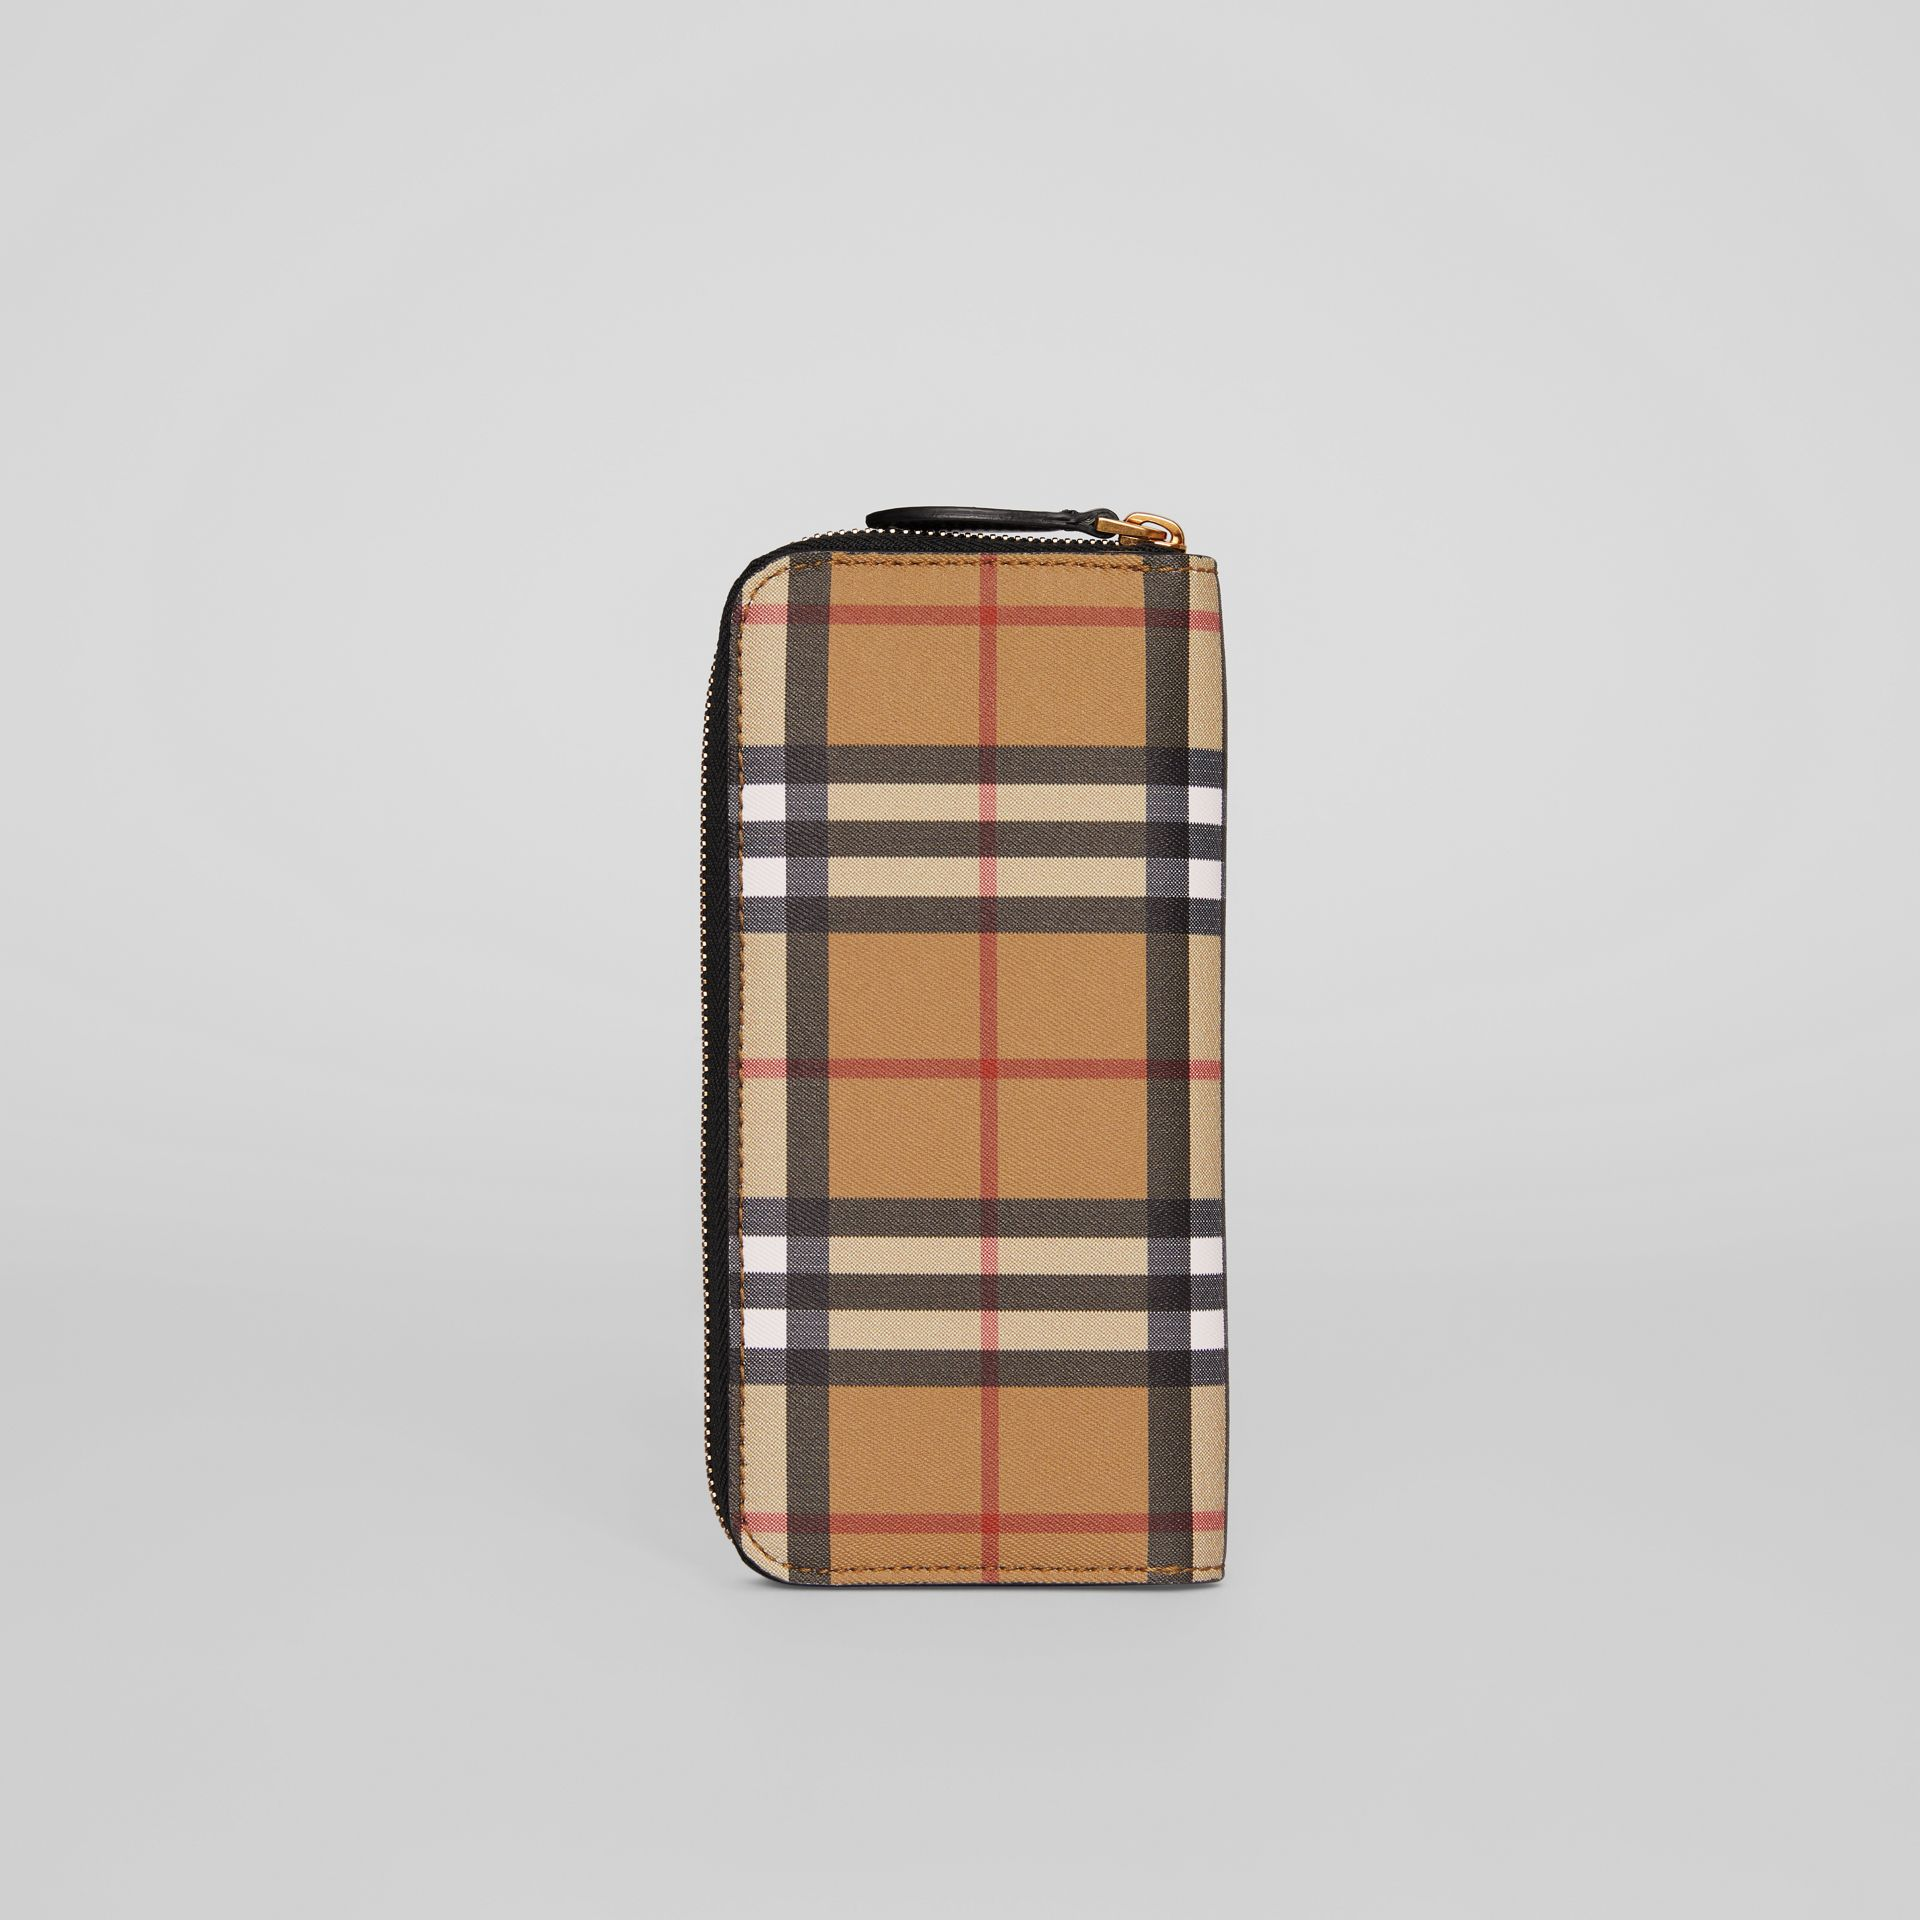 Vintage Check and Leather Ziparound Wallet in Black - Women | Burberry Canada - gallery image 5